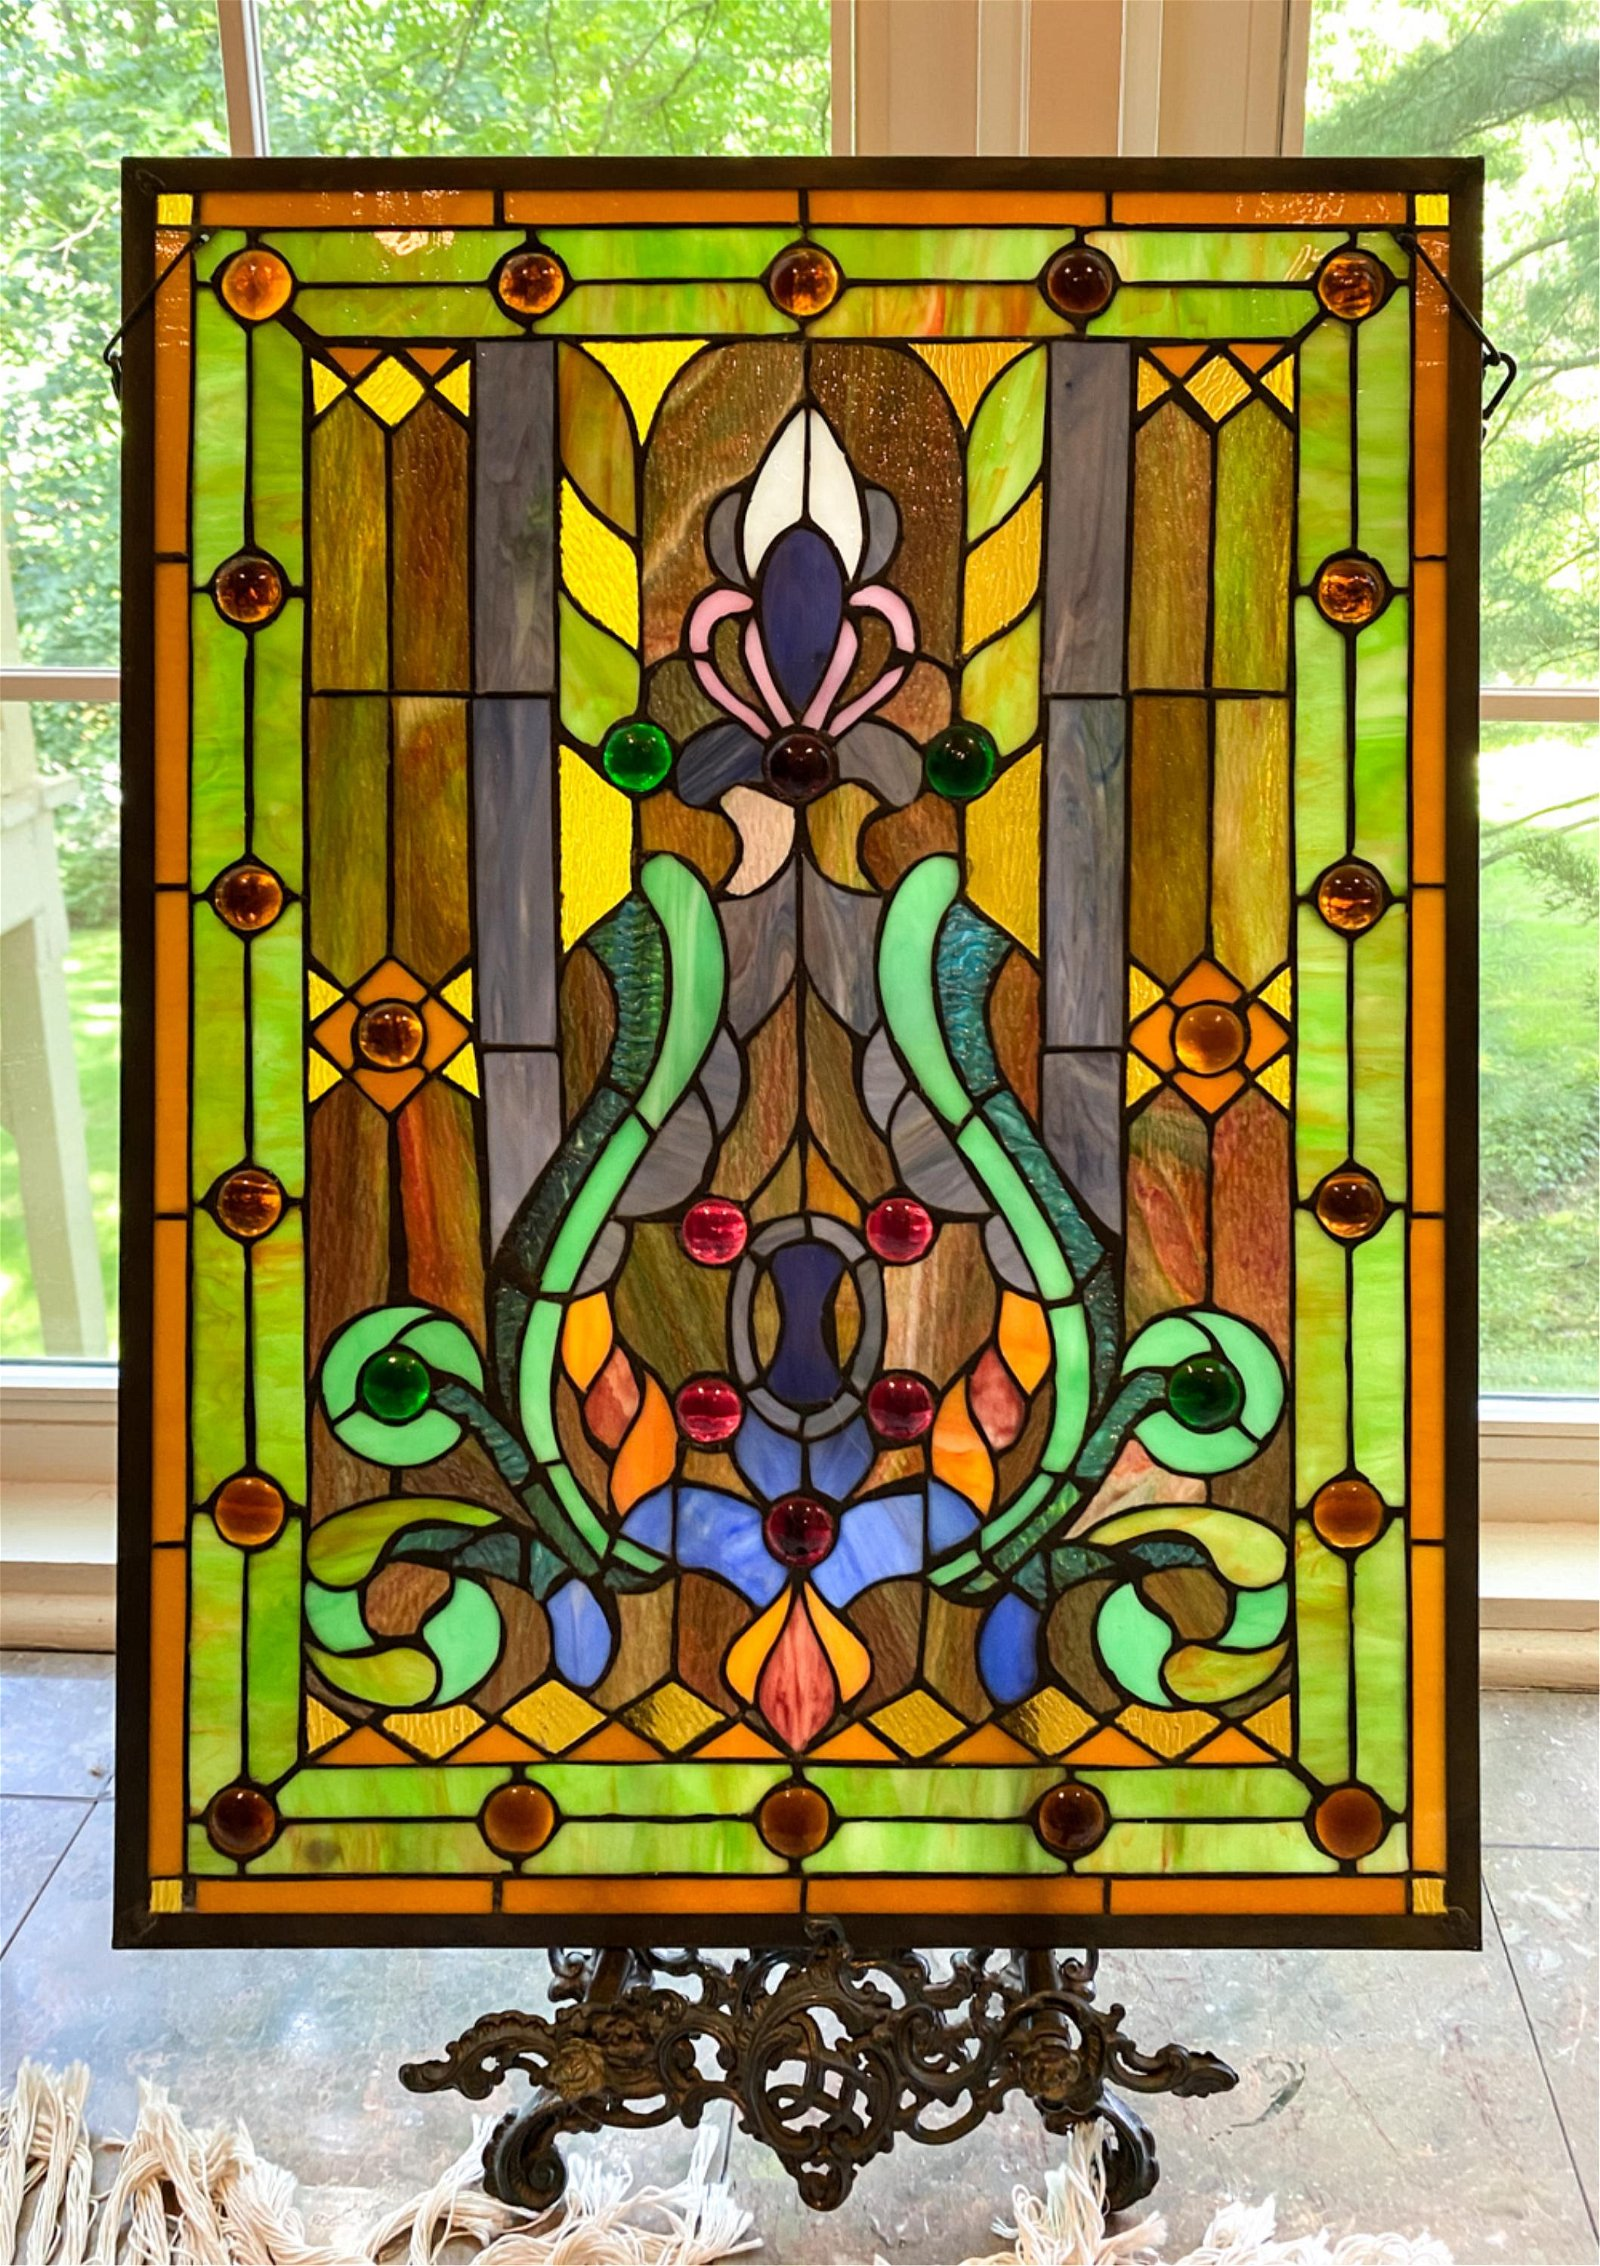 CONTEMPORARY STAINED GLASS WINDOW